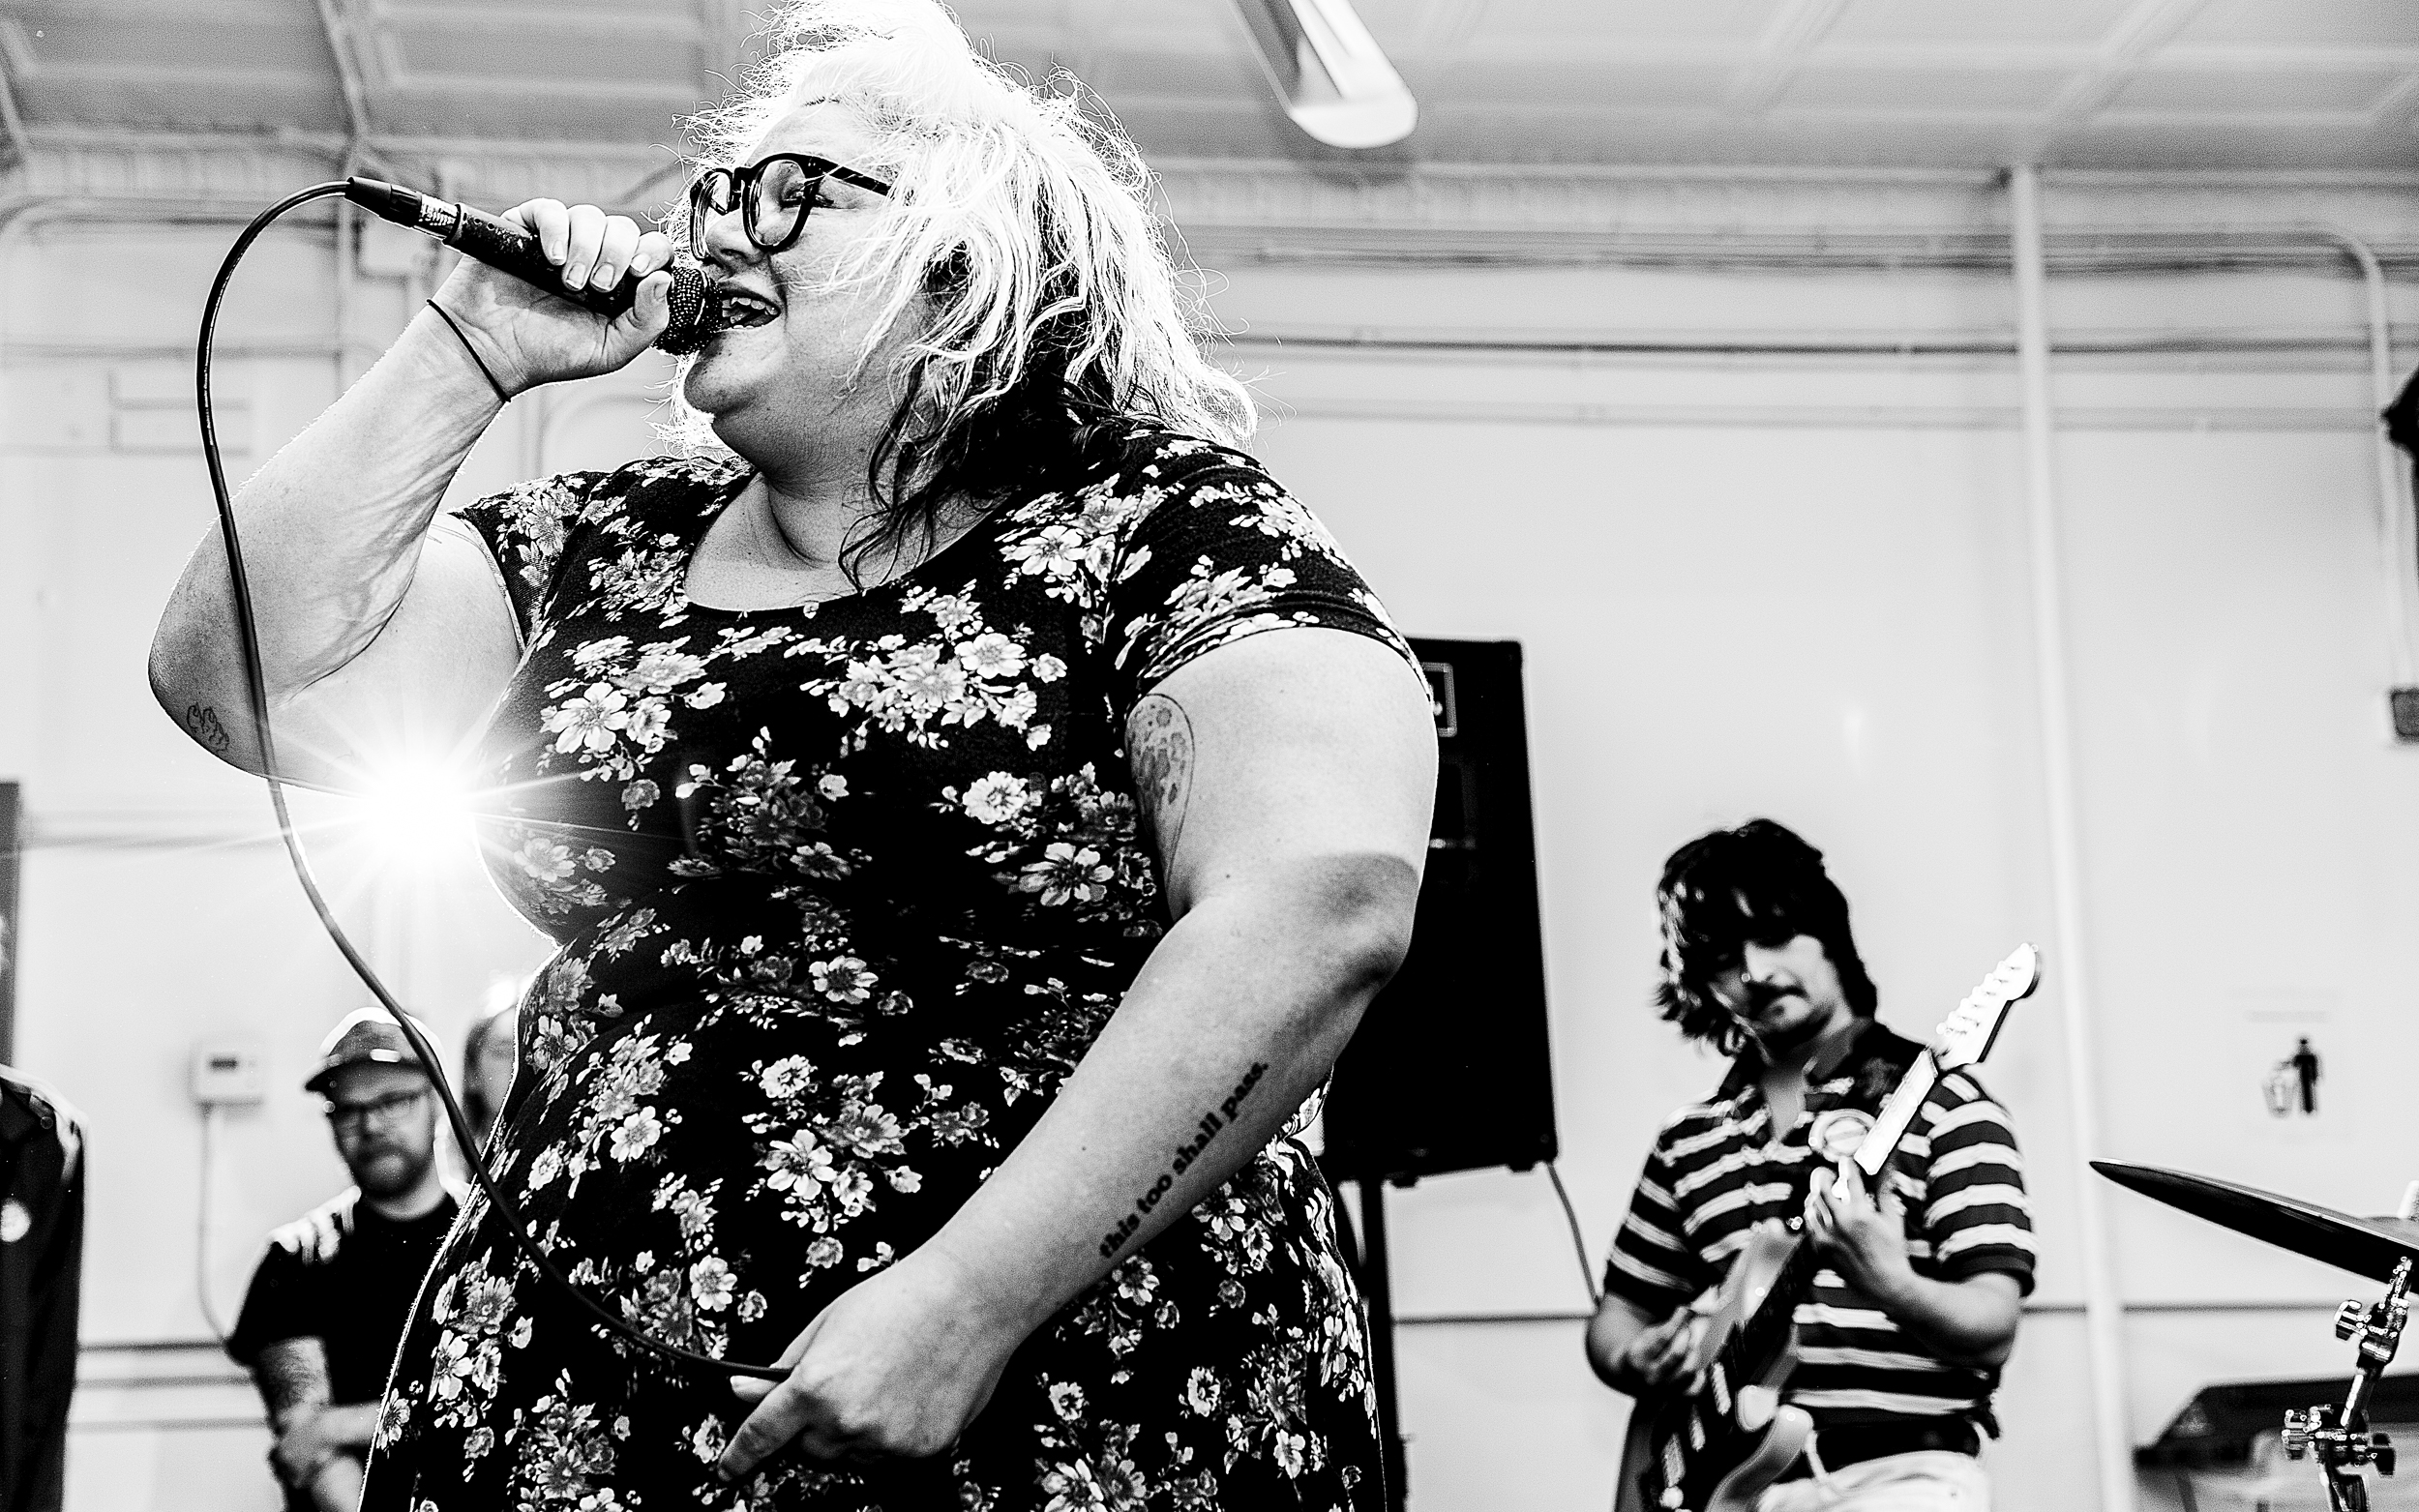 Sheer Mag, Empty Vessels, Coming Down - Westcott Community Center. Syracuse, NY. April 16, 2017